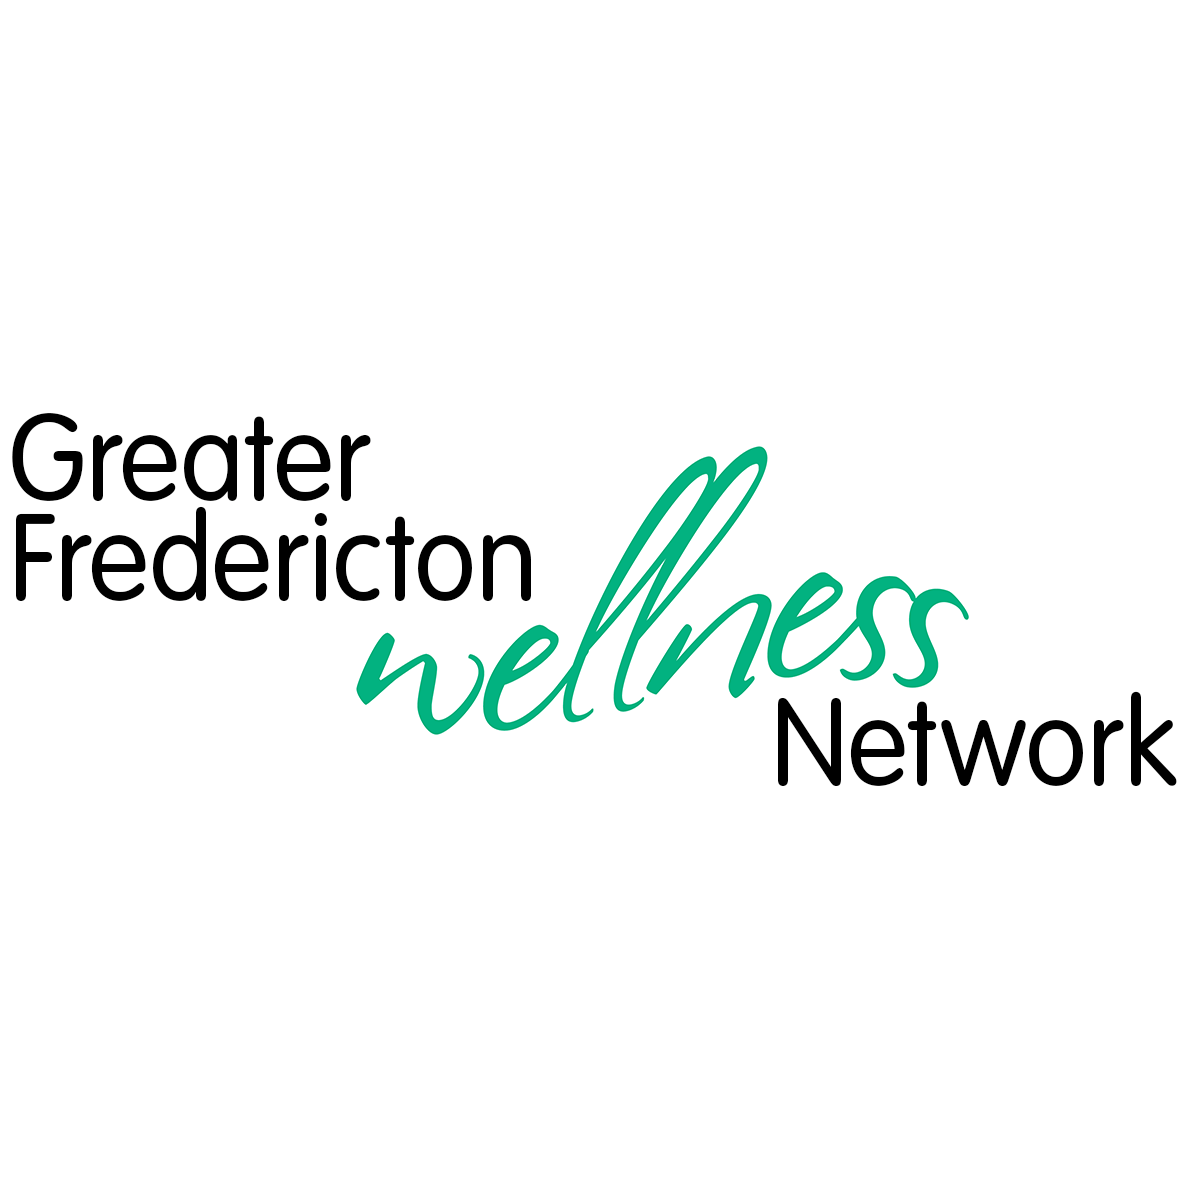 Greater Fredericton